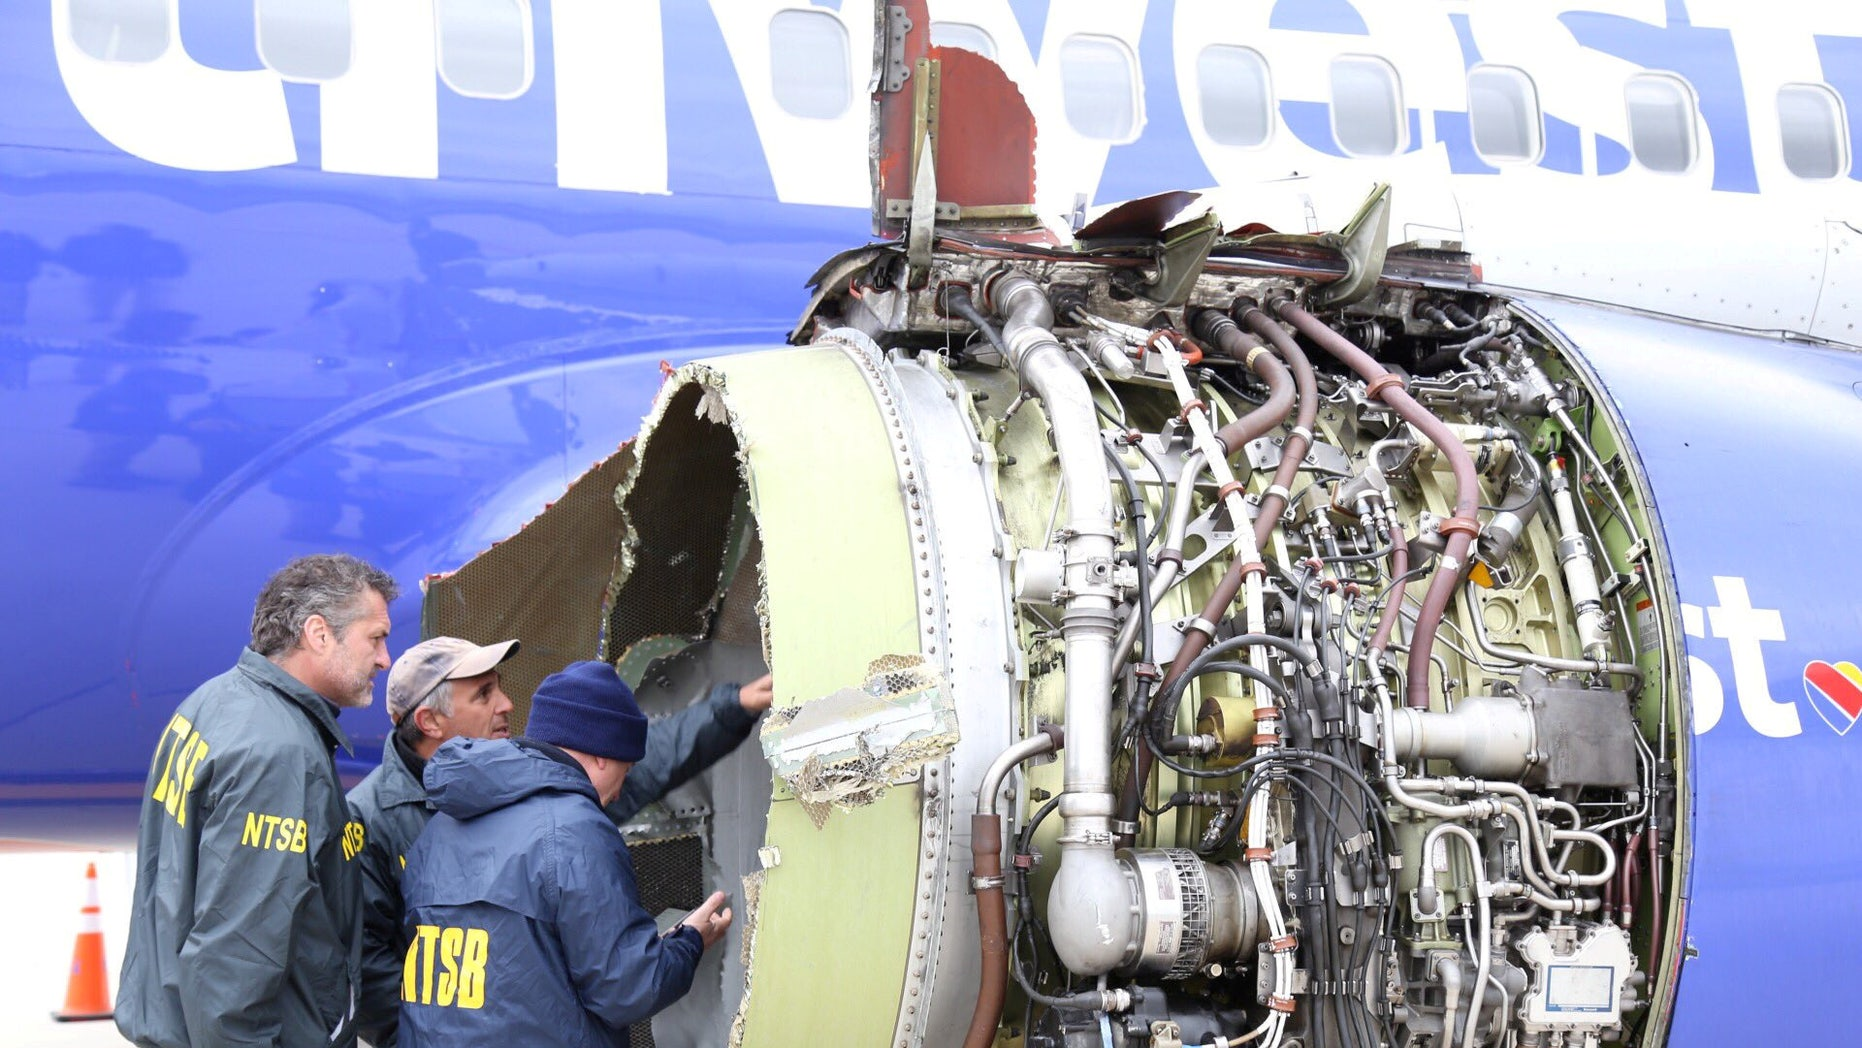 Investigators from the National Transportation Safety Board examine damage to the engine of the Southwest Airlines plane in Philadelphia, April 17, 2018.